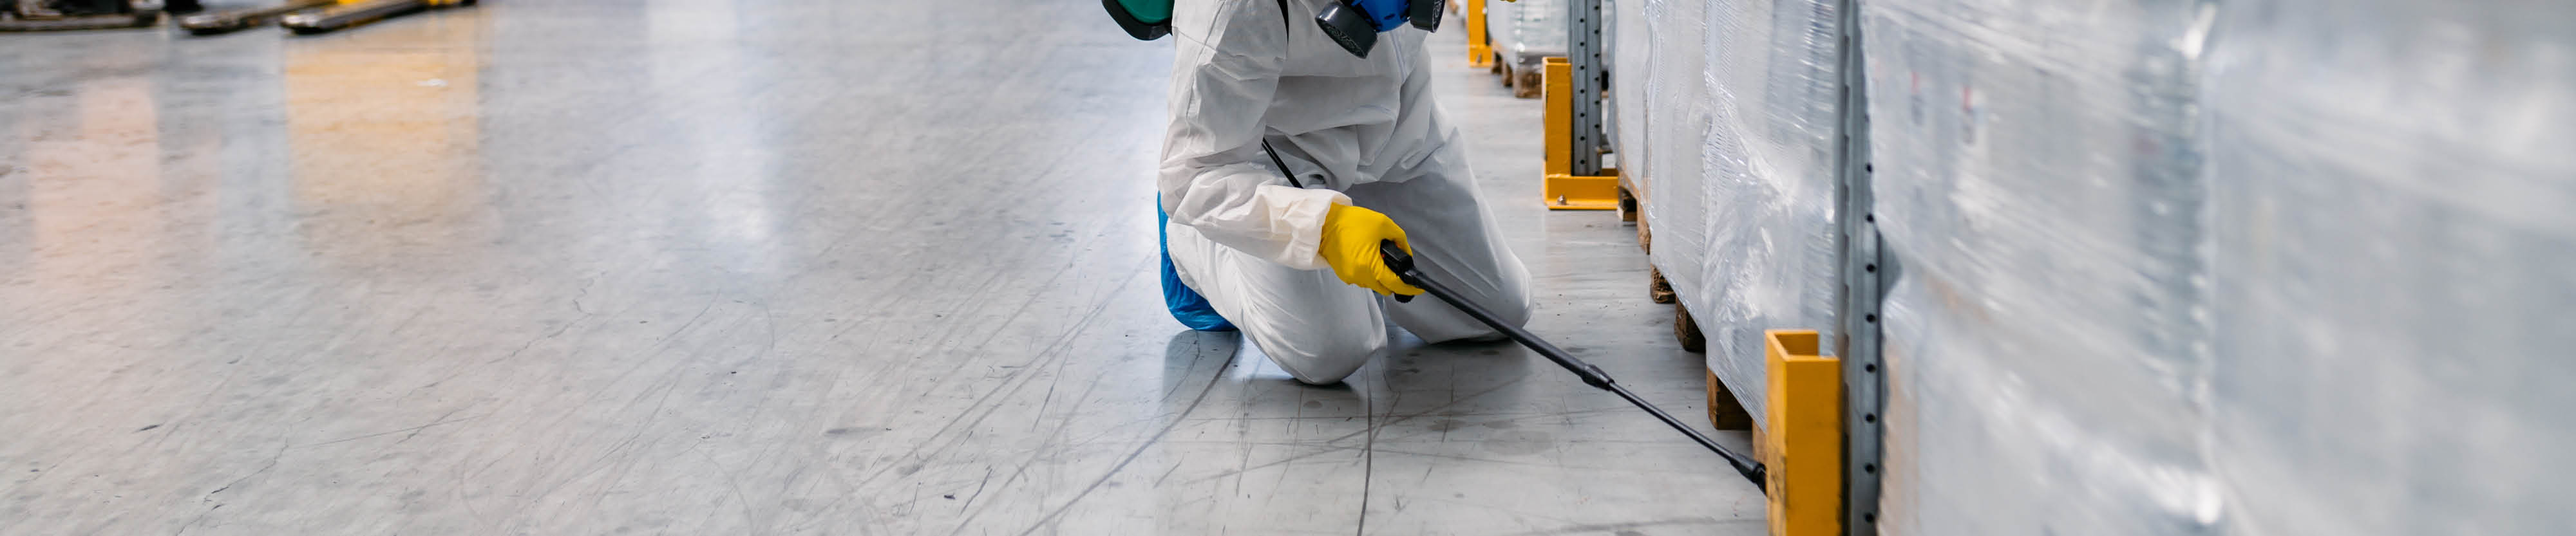 Concor Facility Services Hygiene Ongedierte Banner